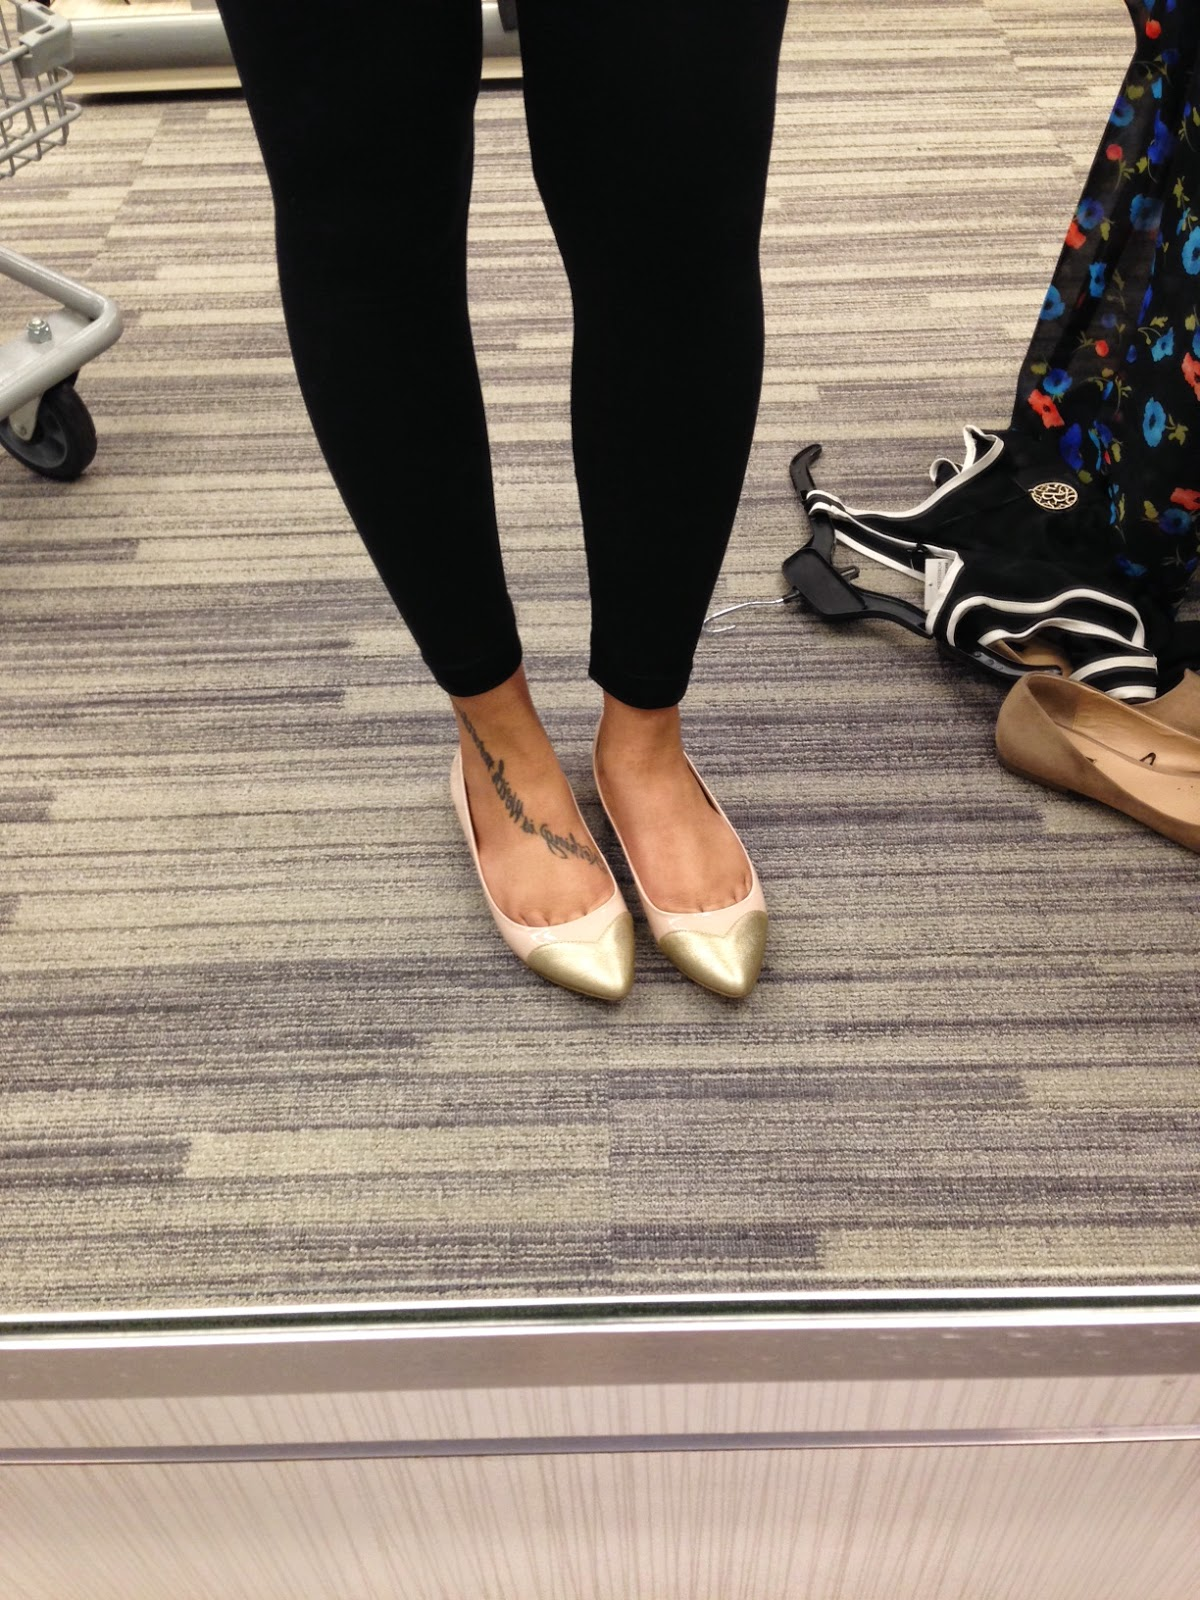 Fashion week Wear to what to nordstrom rack interview for woman